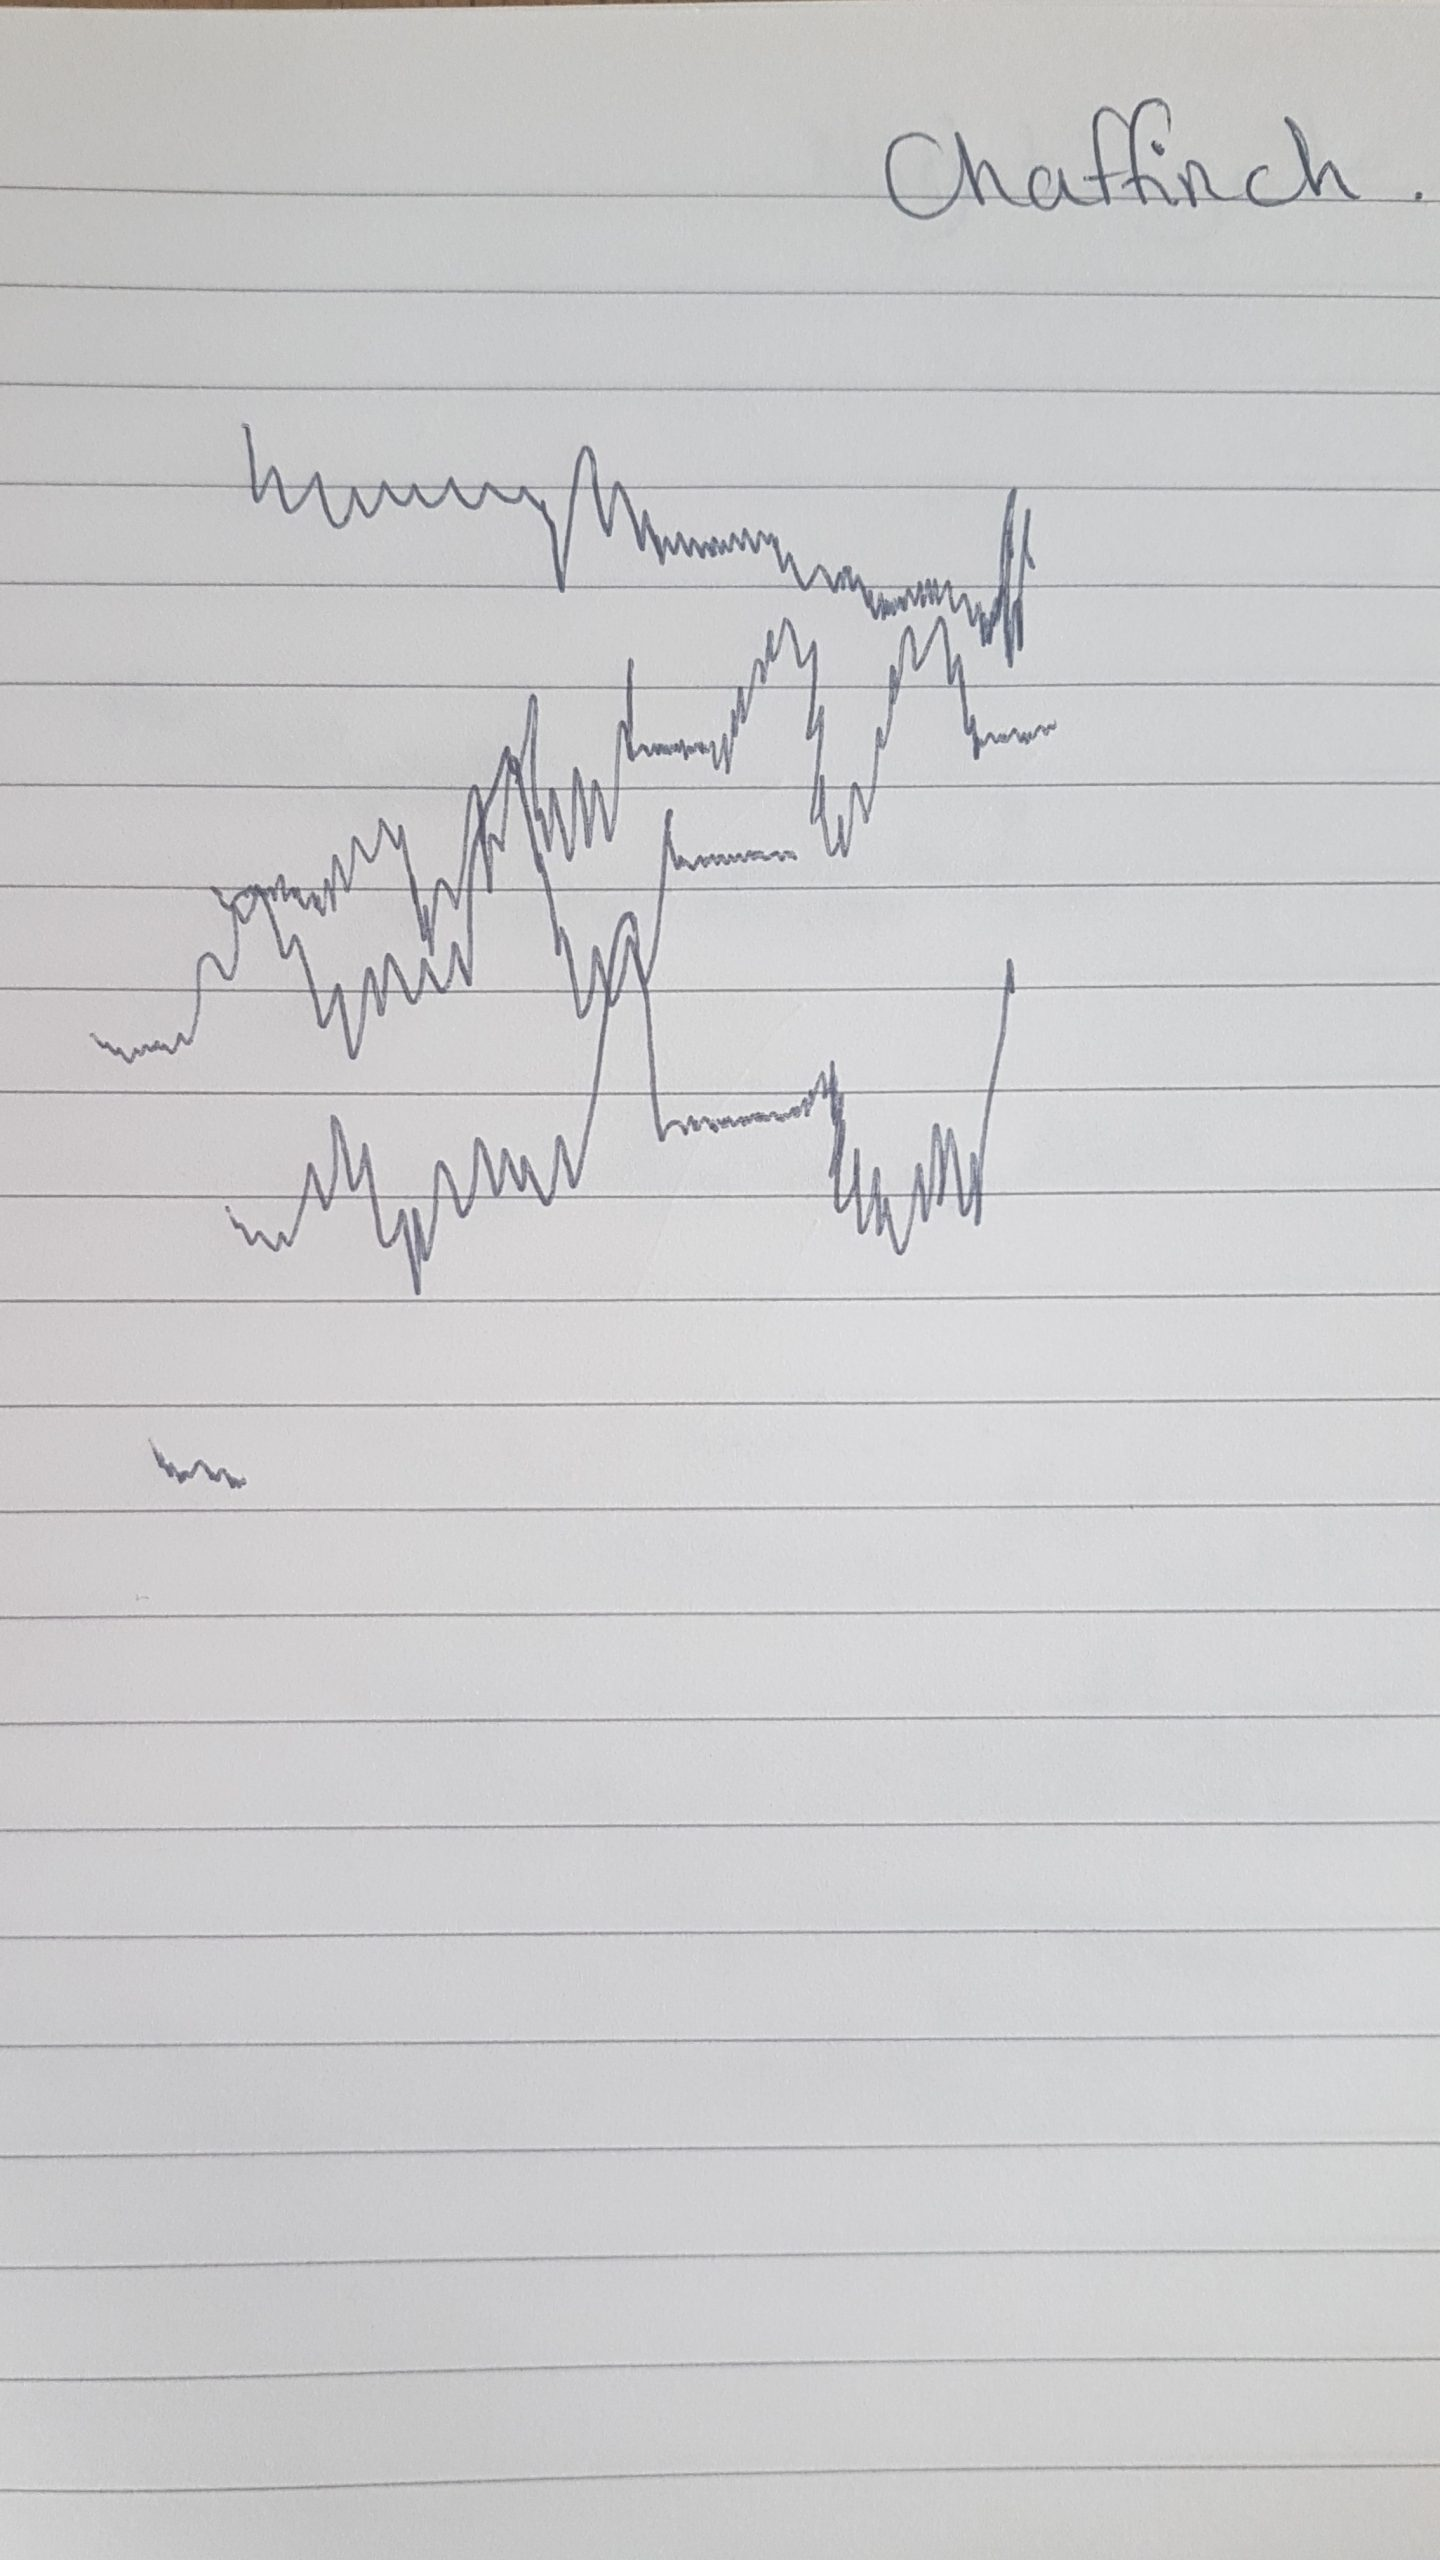 Drawing of a chaffinch's birdsong